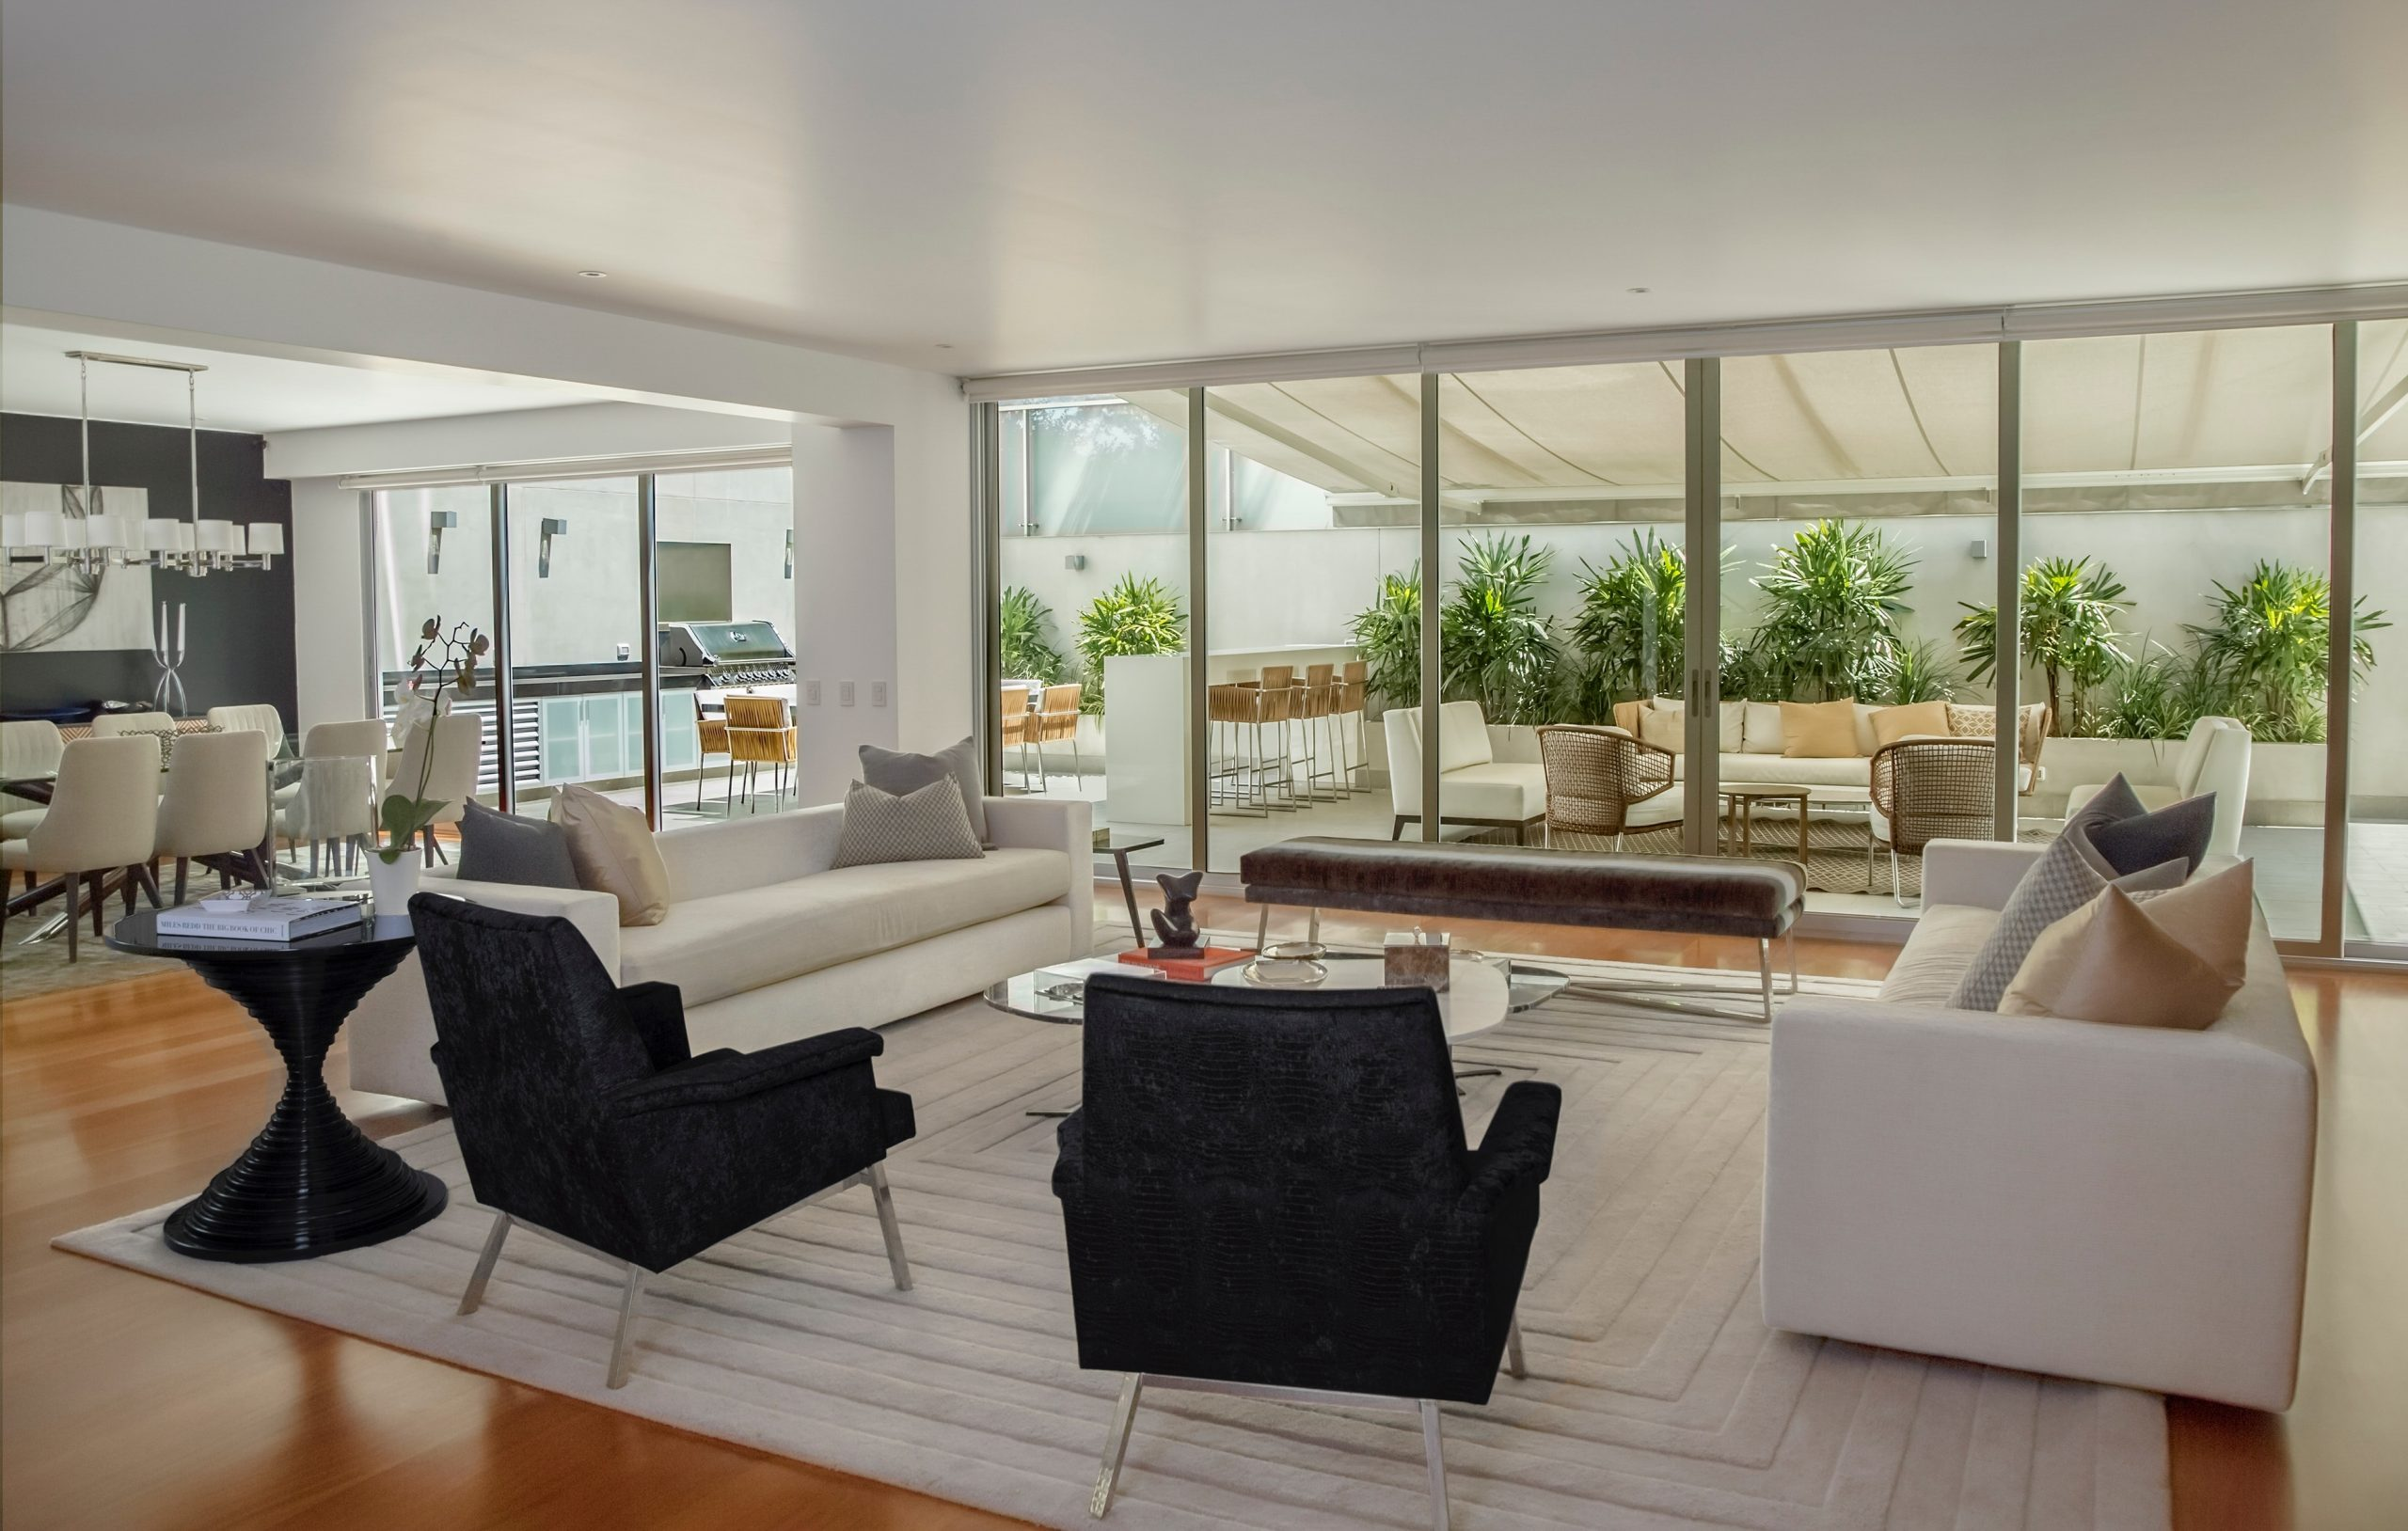 FIVE LITTLE THINGS YOU CAN DO TO MAKE YOUR HOME MORE APPEALING